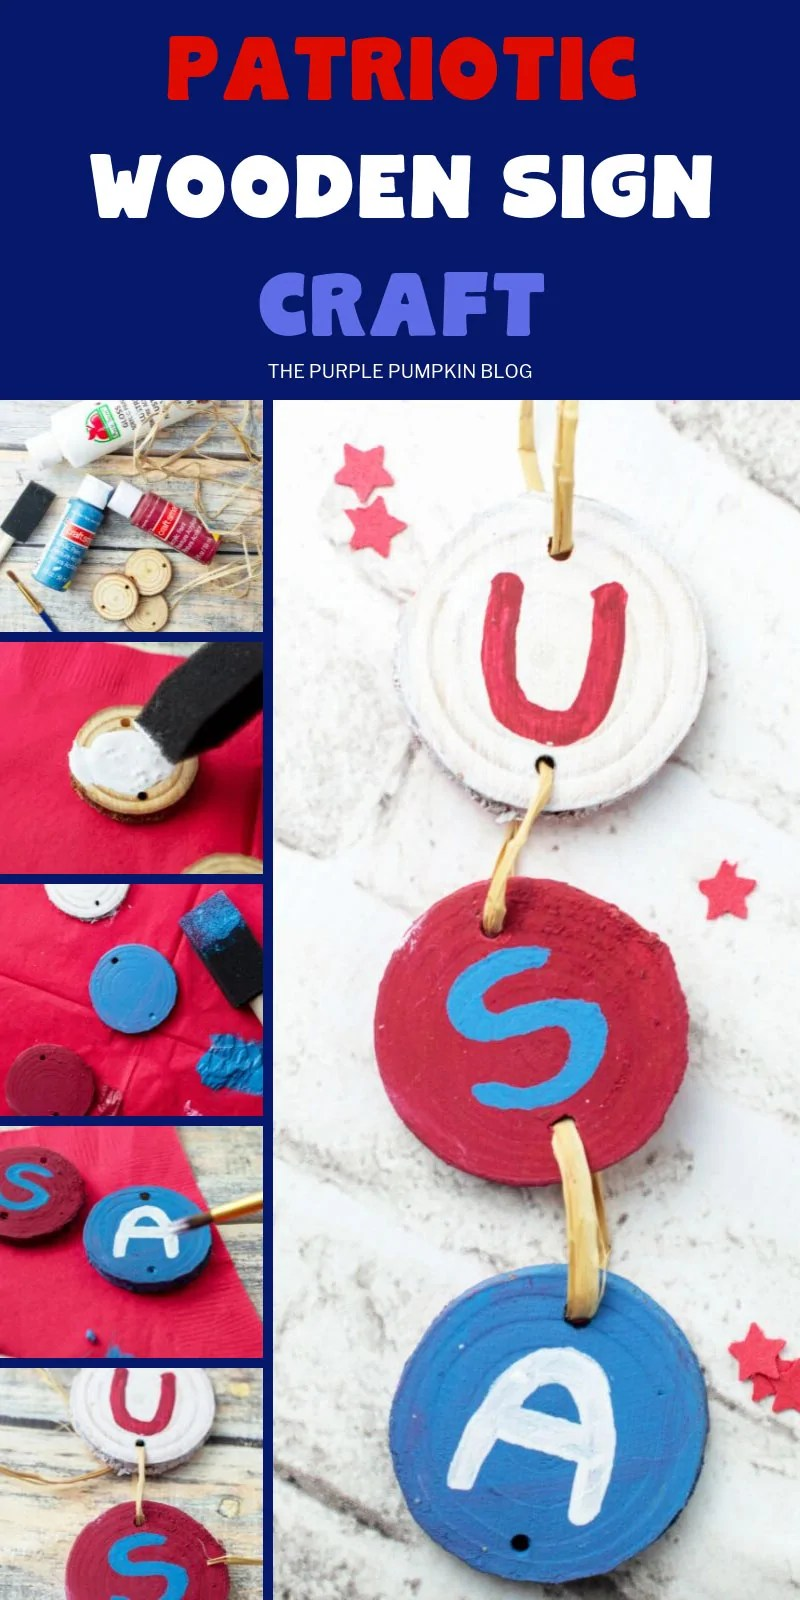 USA Wooden hanging sign with step-by step photographs